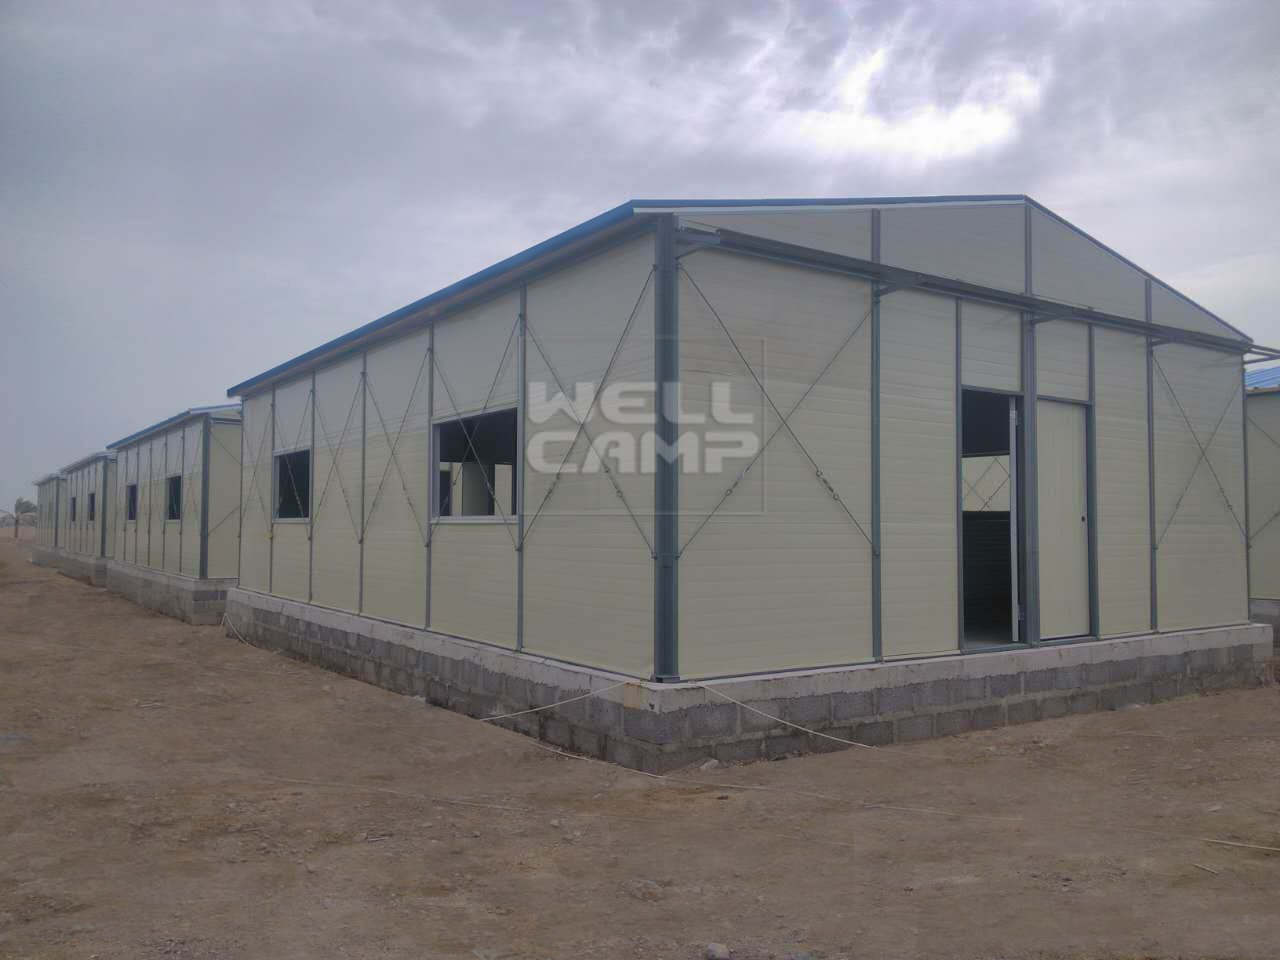 Wellcamp Rock Wool Steel Prefab House in Oman Project